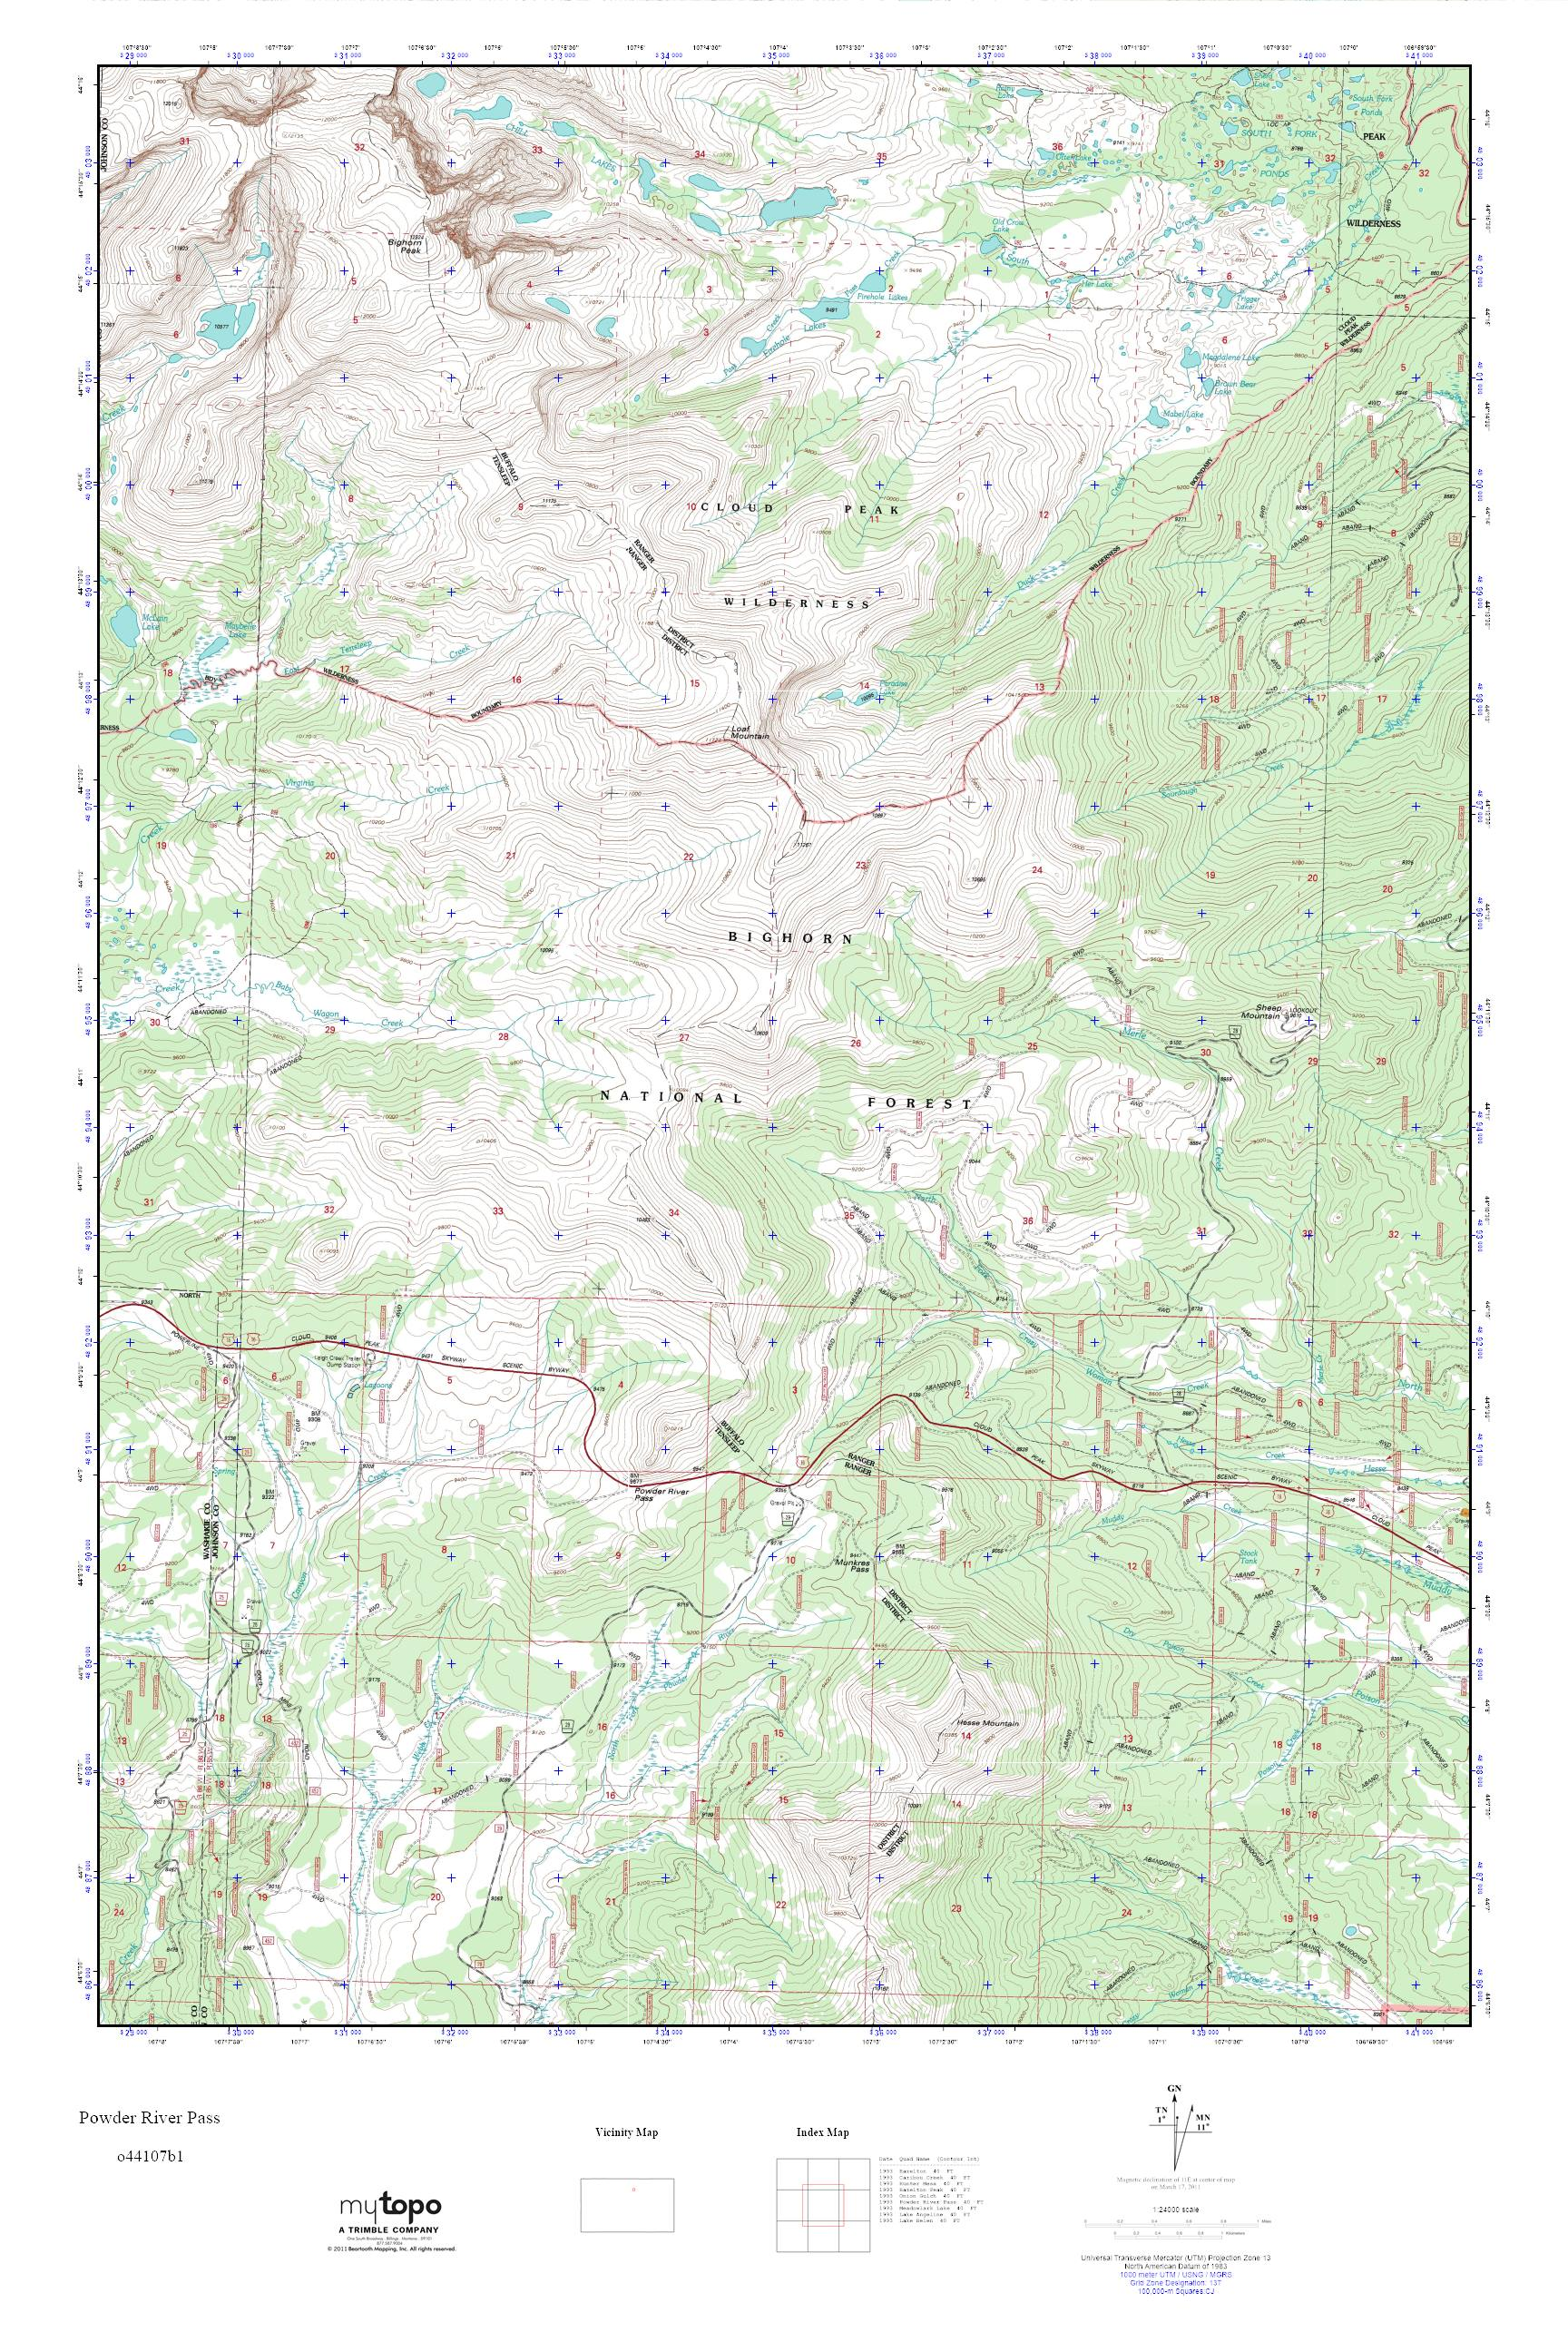 Powder River Wyoming Map.Mytopo Powder River Pass Wyoming Usgs Quad Topo Map